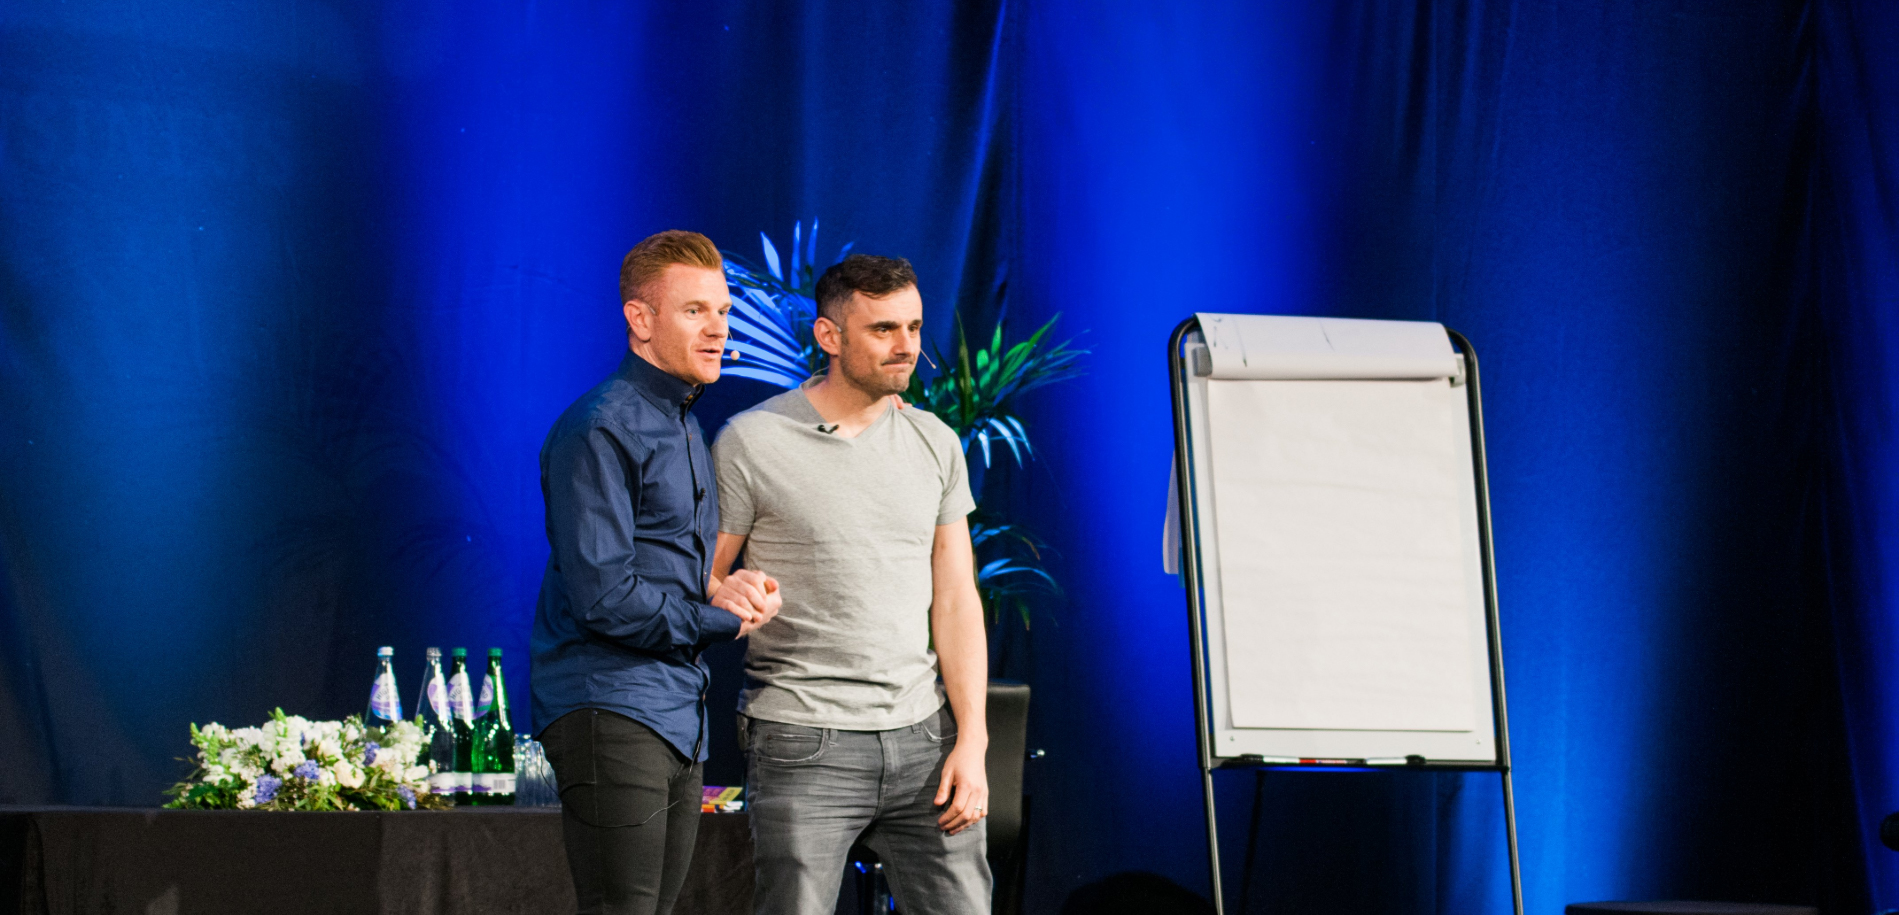 Andy Harrington & Nick James – Tips voor je presentaties en je marketing